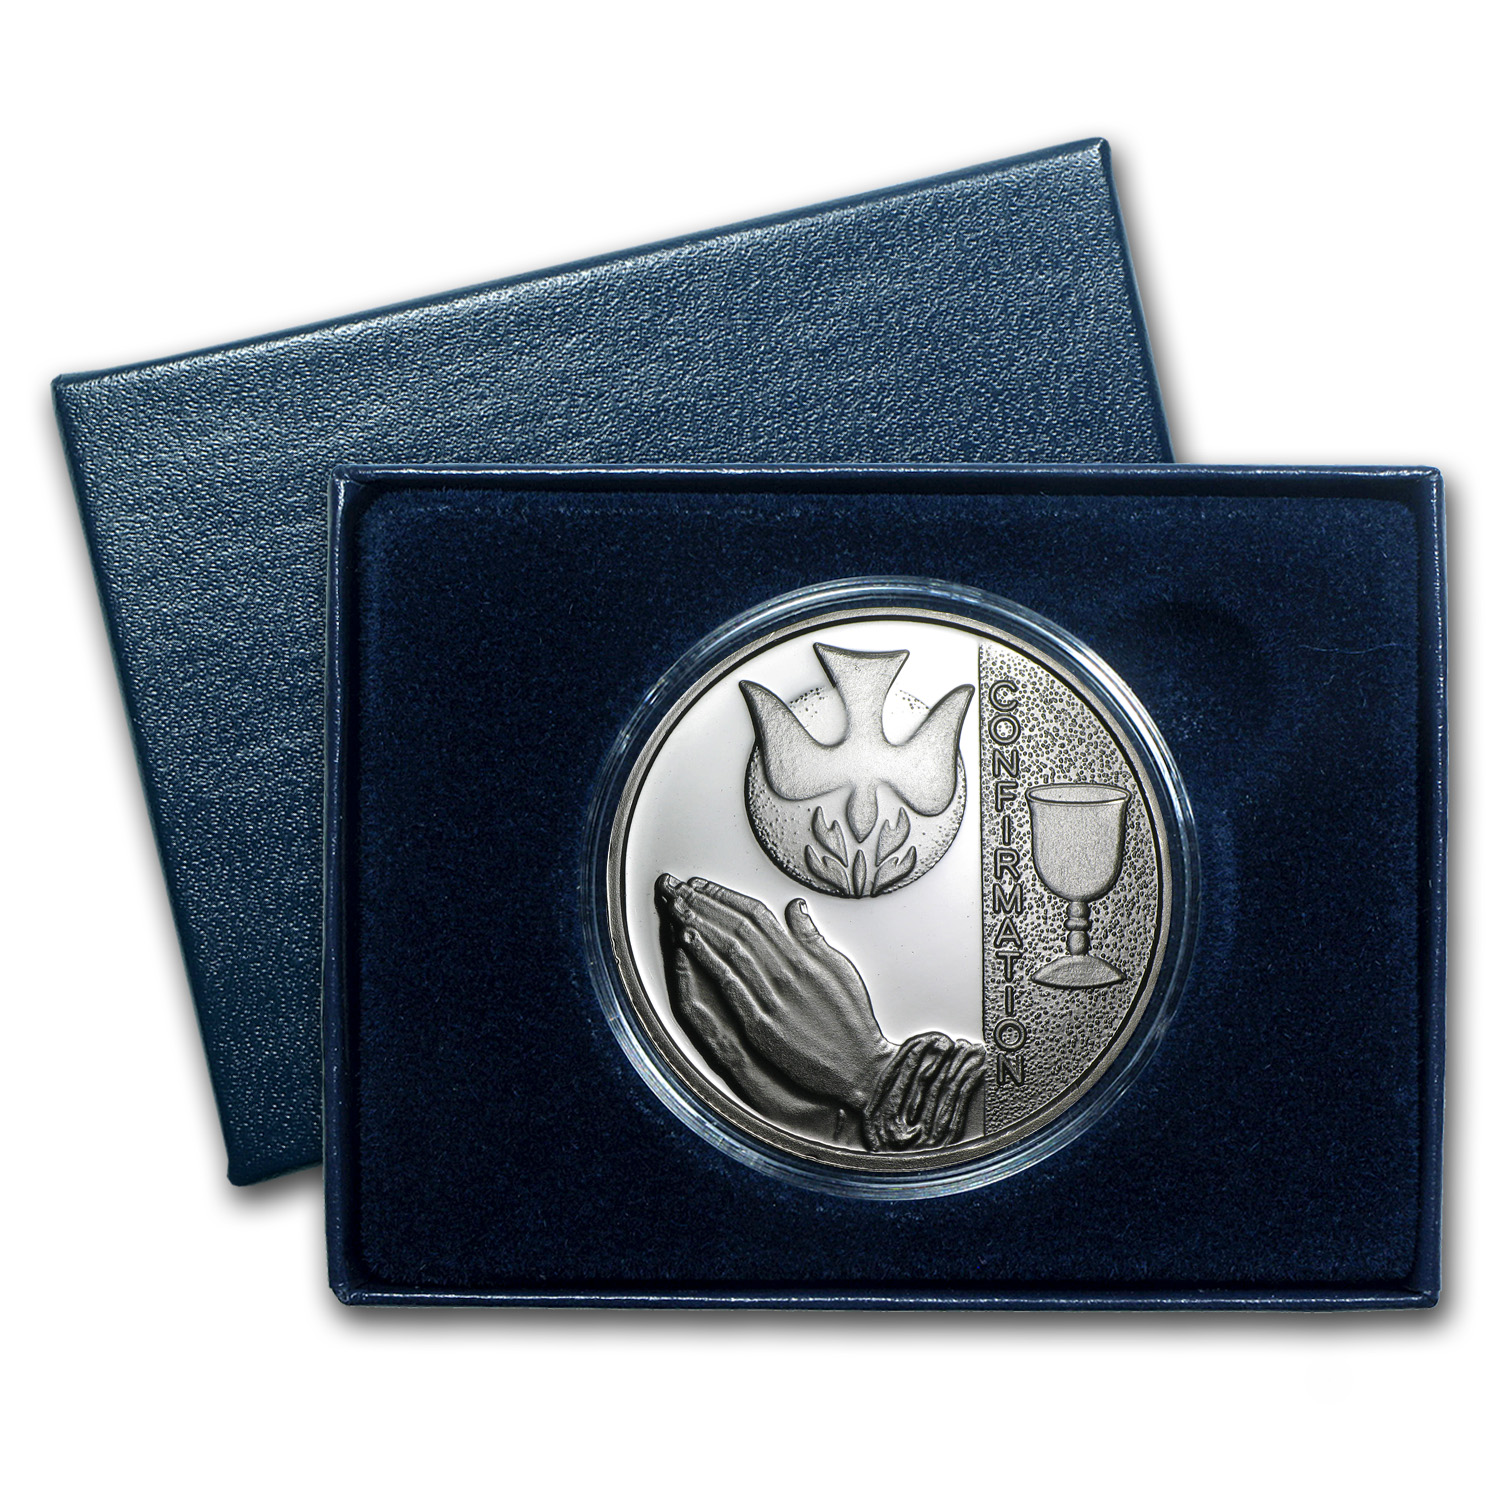 2014 1 oz Silver Round - Confirmation (w/Box & Capsule)